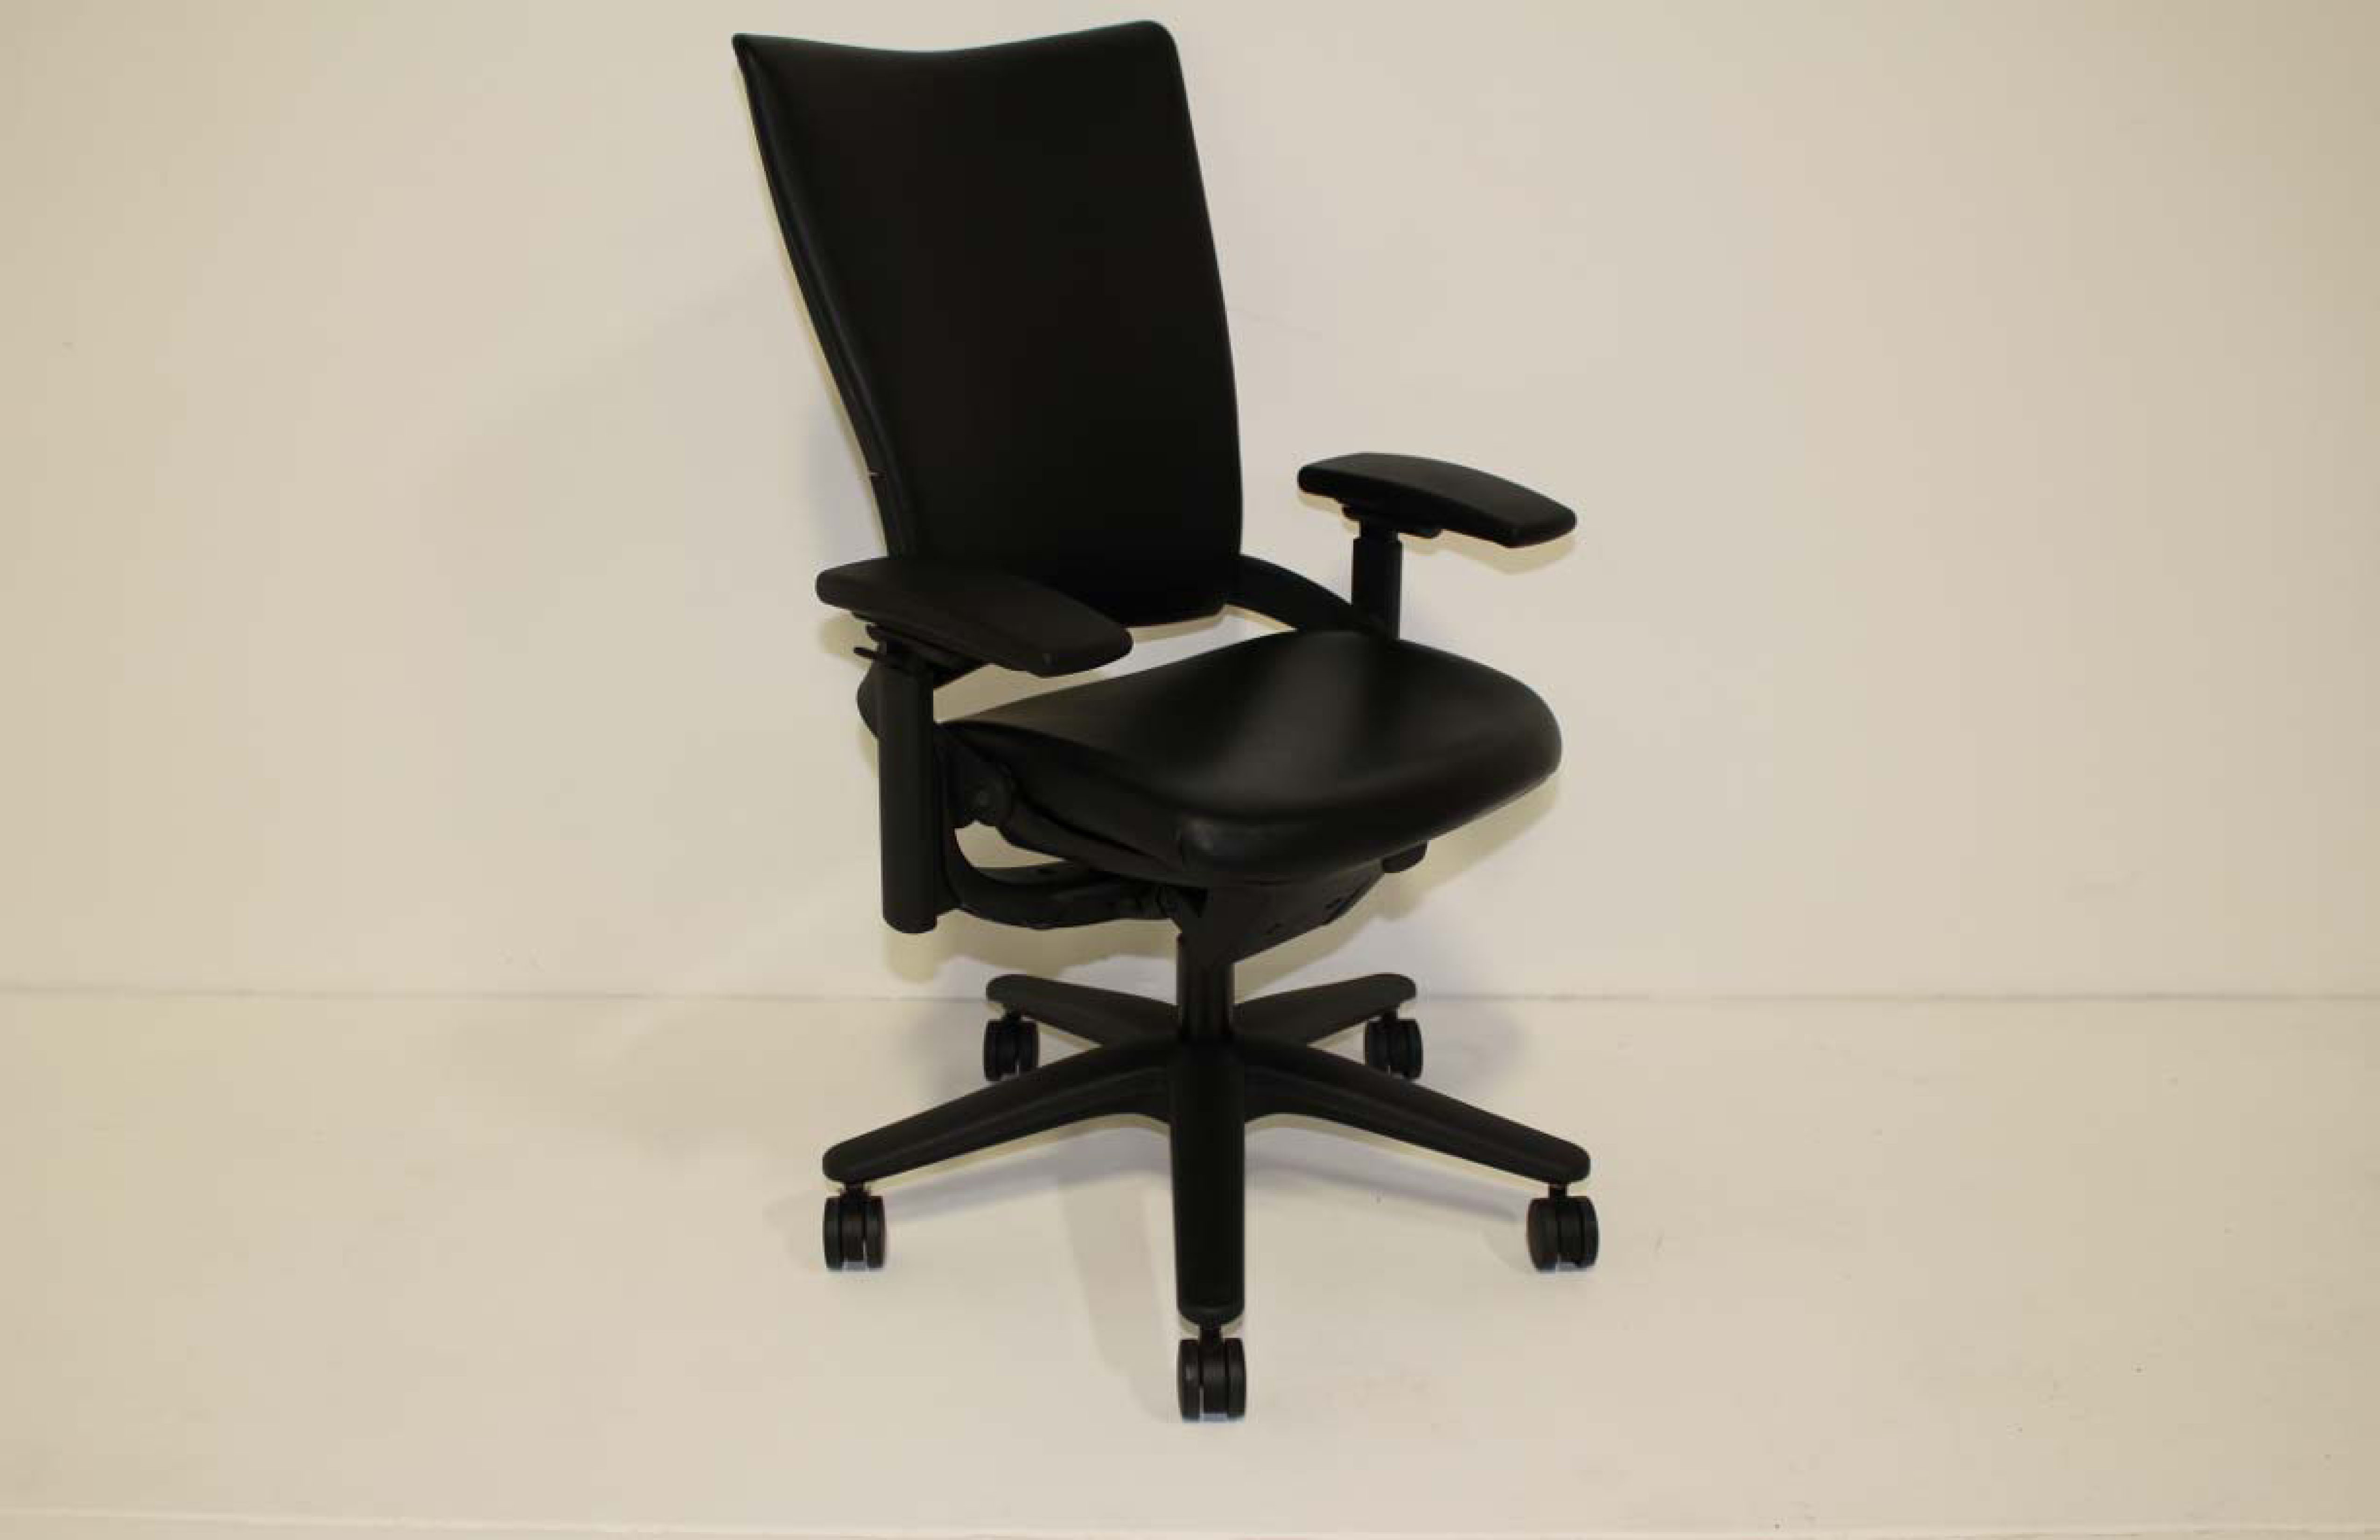 allsteel relate chair reviews for shower new workstations page  low and hi res image comparison